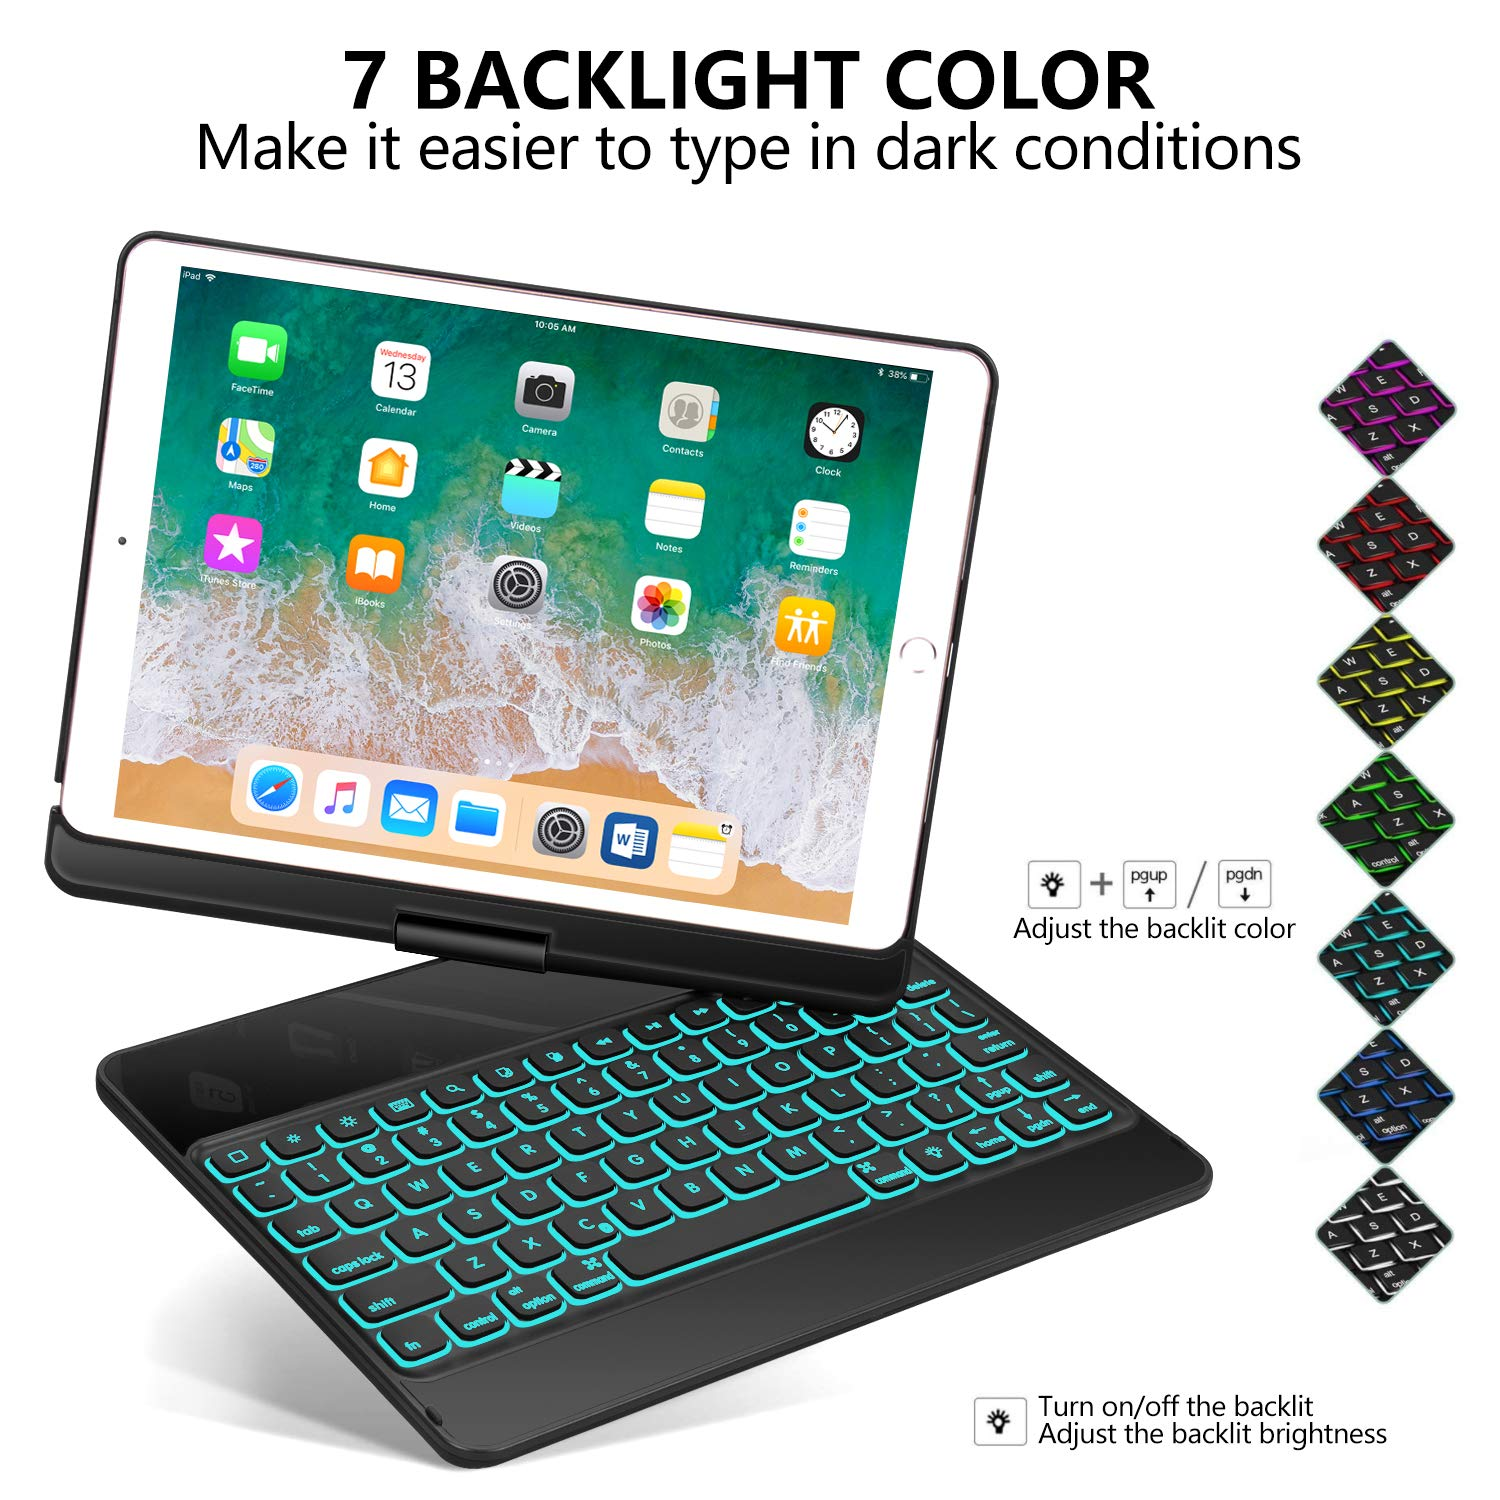 iPad Pro 10.5 Keyboard Case for iPad Pro 10.5 inch 2017 /iPad Air 10.5 (3rd Gen) 2019, 360 Rotate BT/Wireless Backlit Keyboard Case/Smart Auto Sleep-Wake Case/Ultra-Thin Keyboard Cover (Black) by Earto (Image #4)